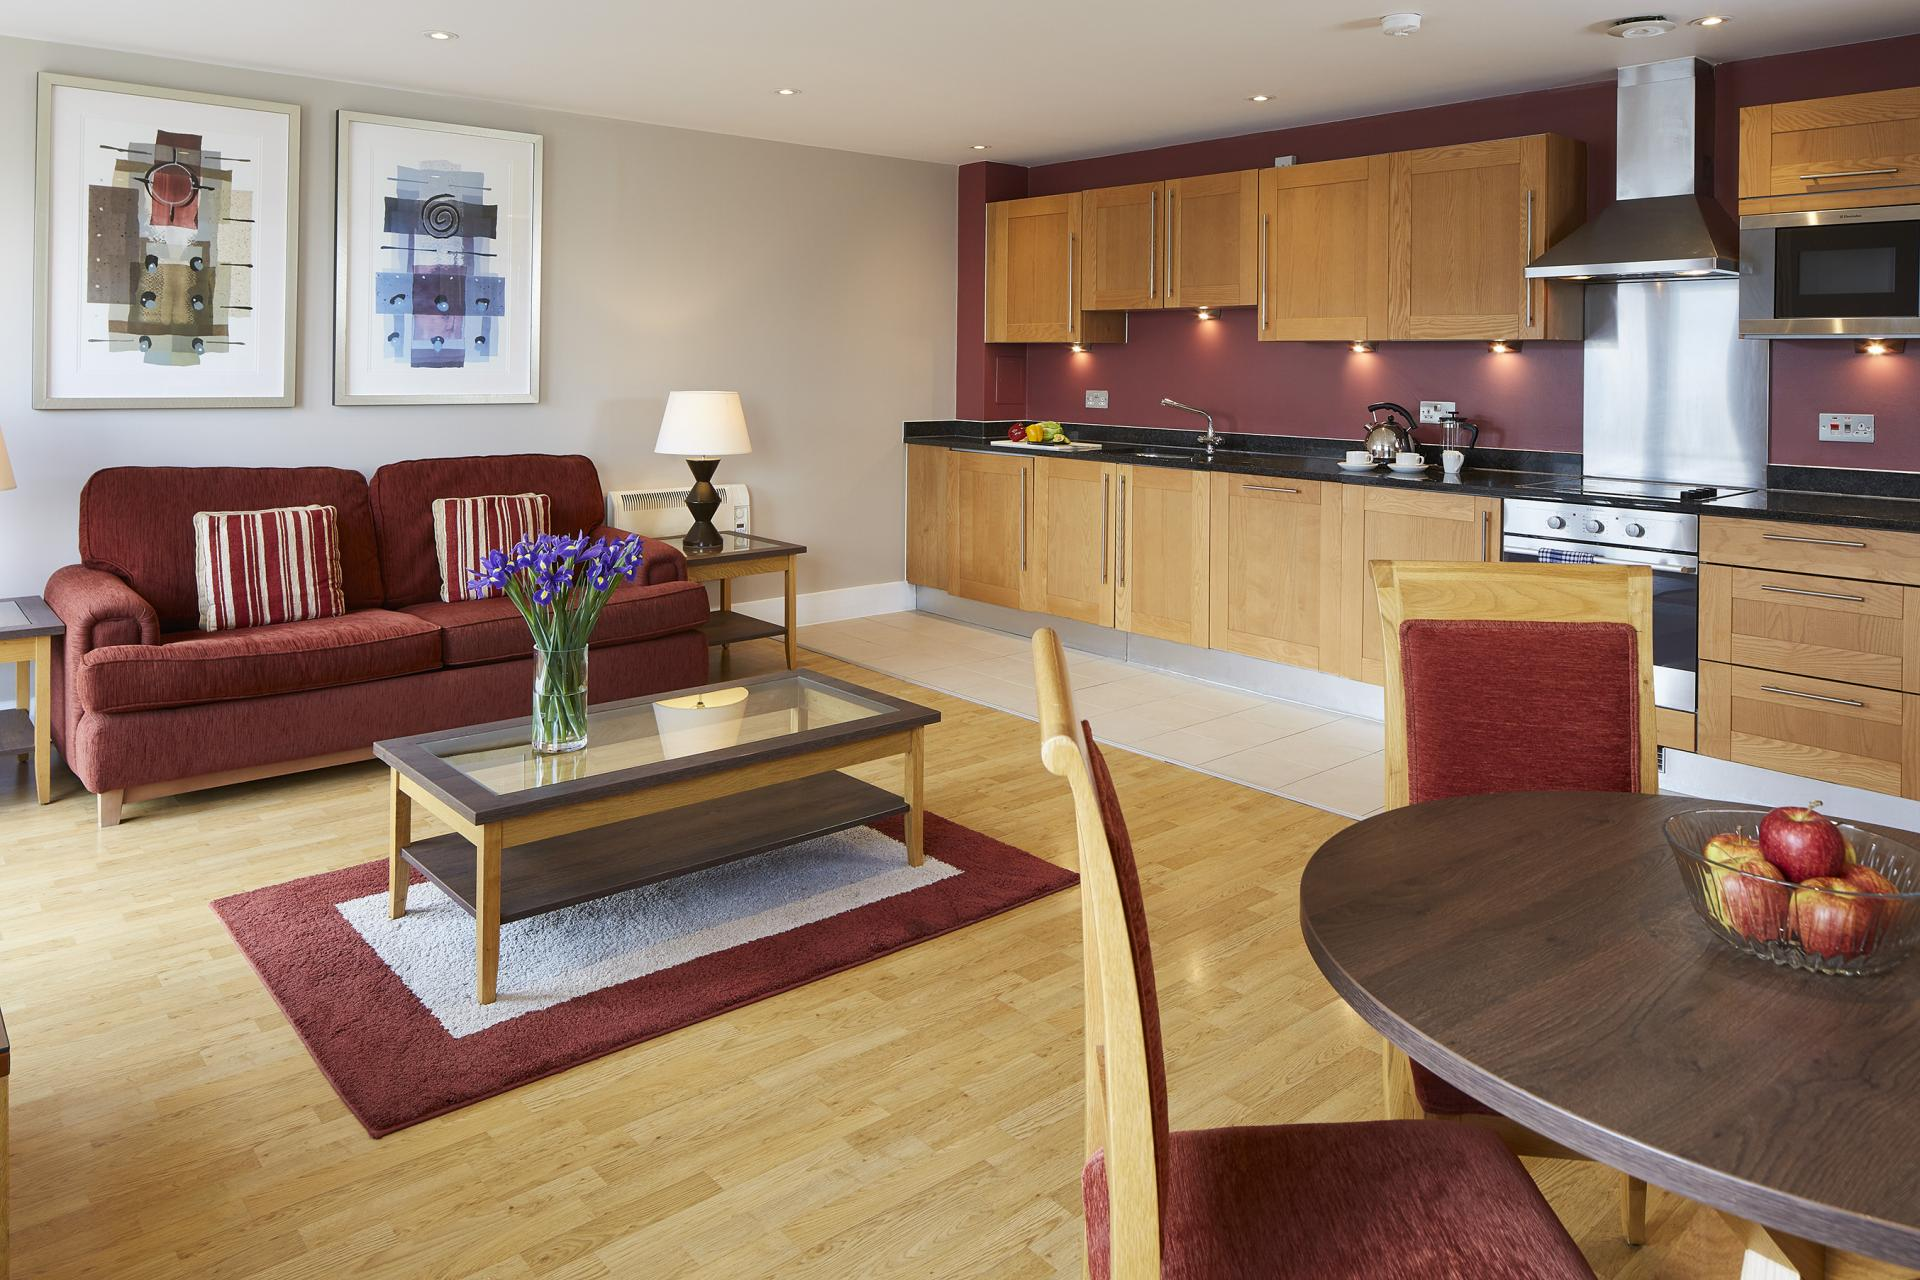 Kitchen diner at Limehouse Apartments, Limehouse, London - Citybase Apartments